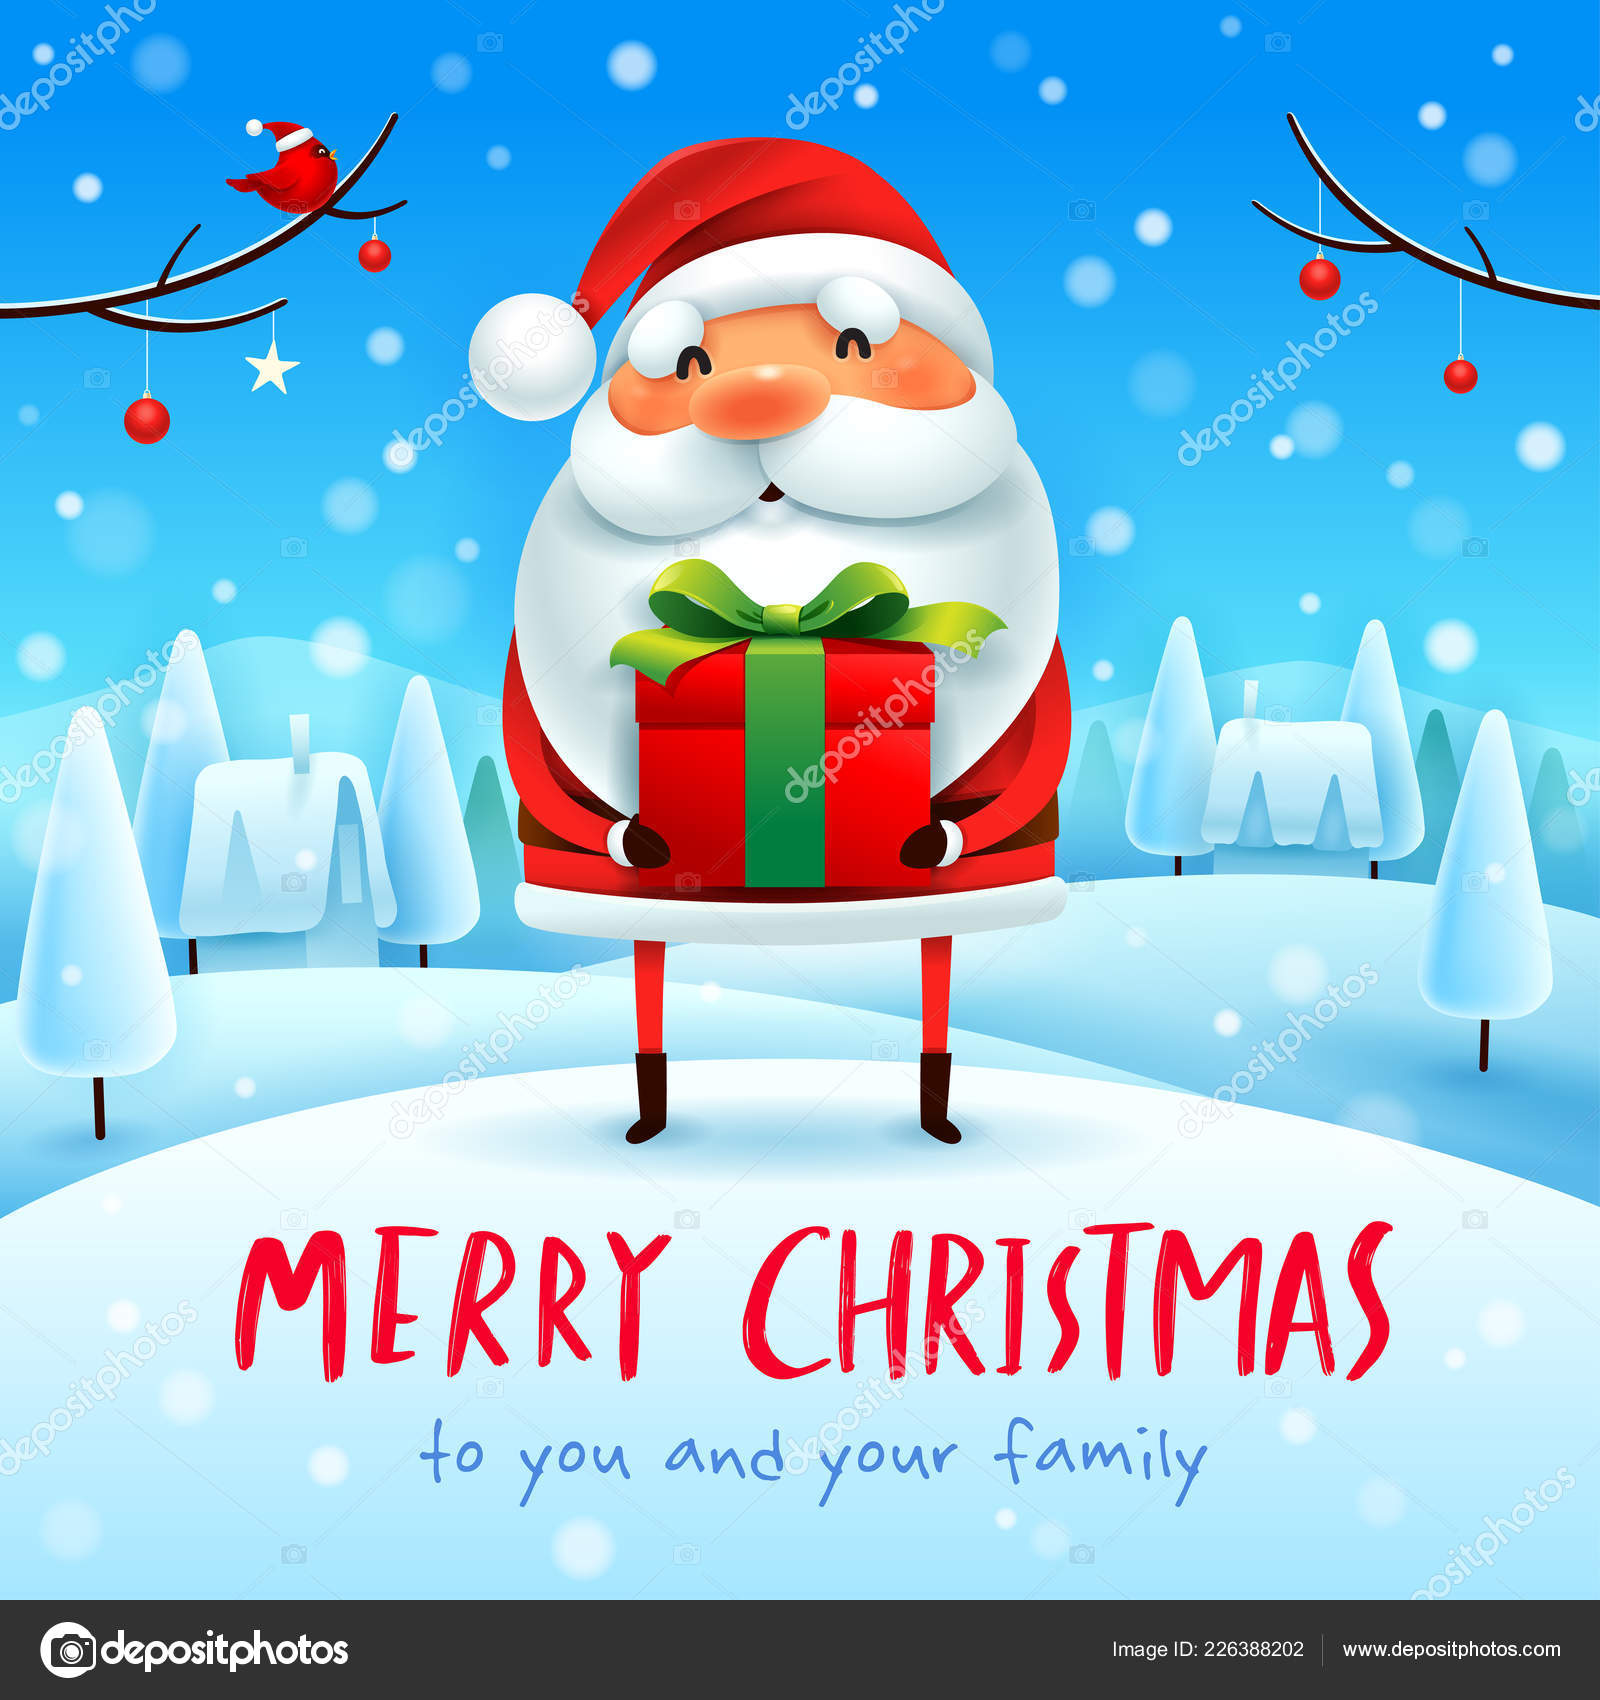 Merry Christmas And Happy New Year.Santa Claus Is Rides